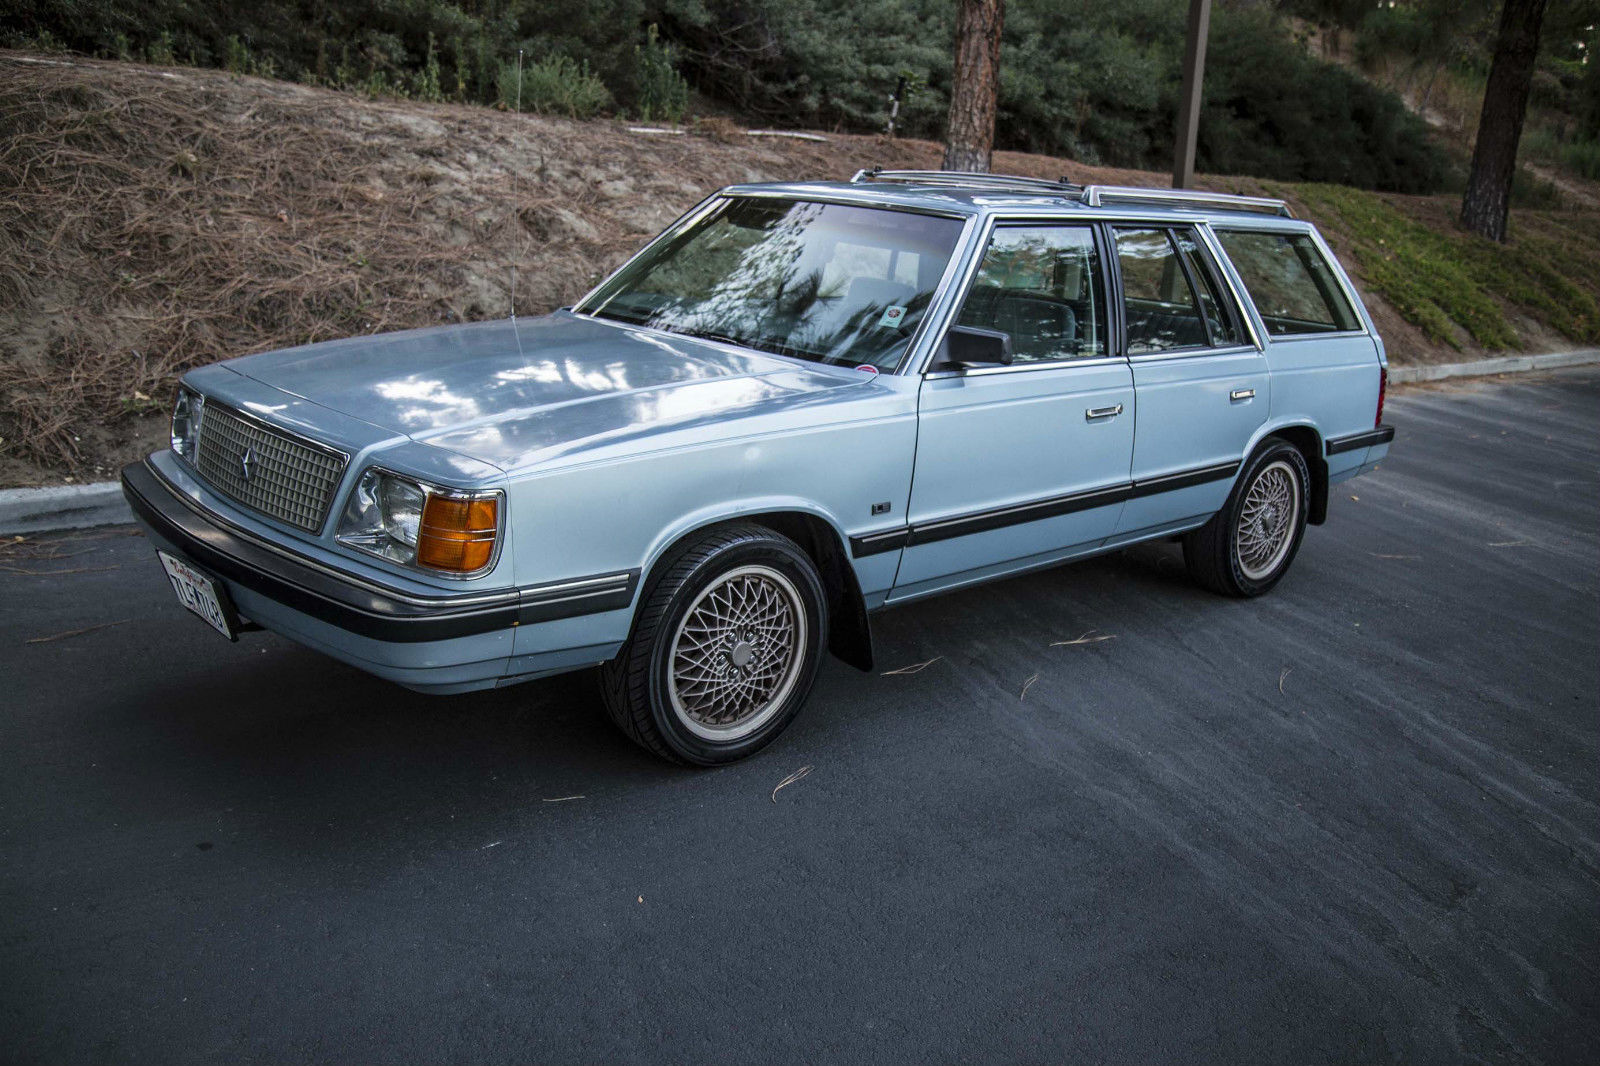 For Sale  Plymouth Reliant Wagon With A Turbo I4